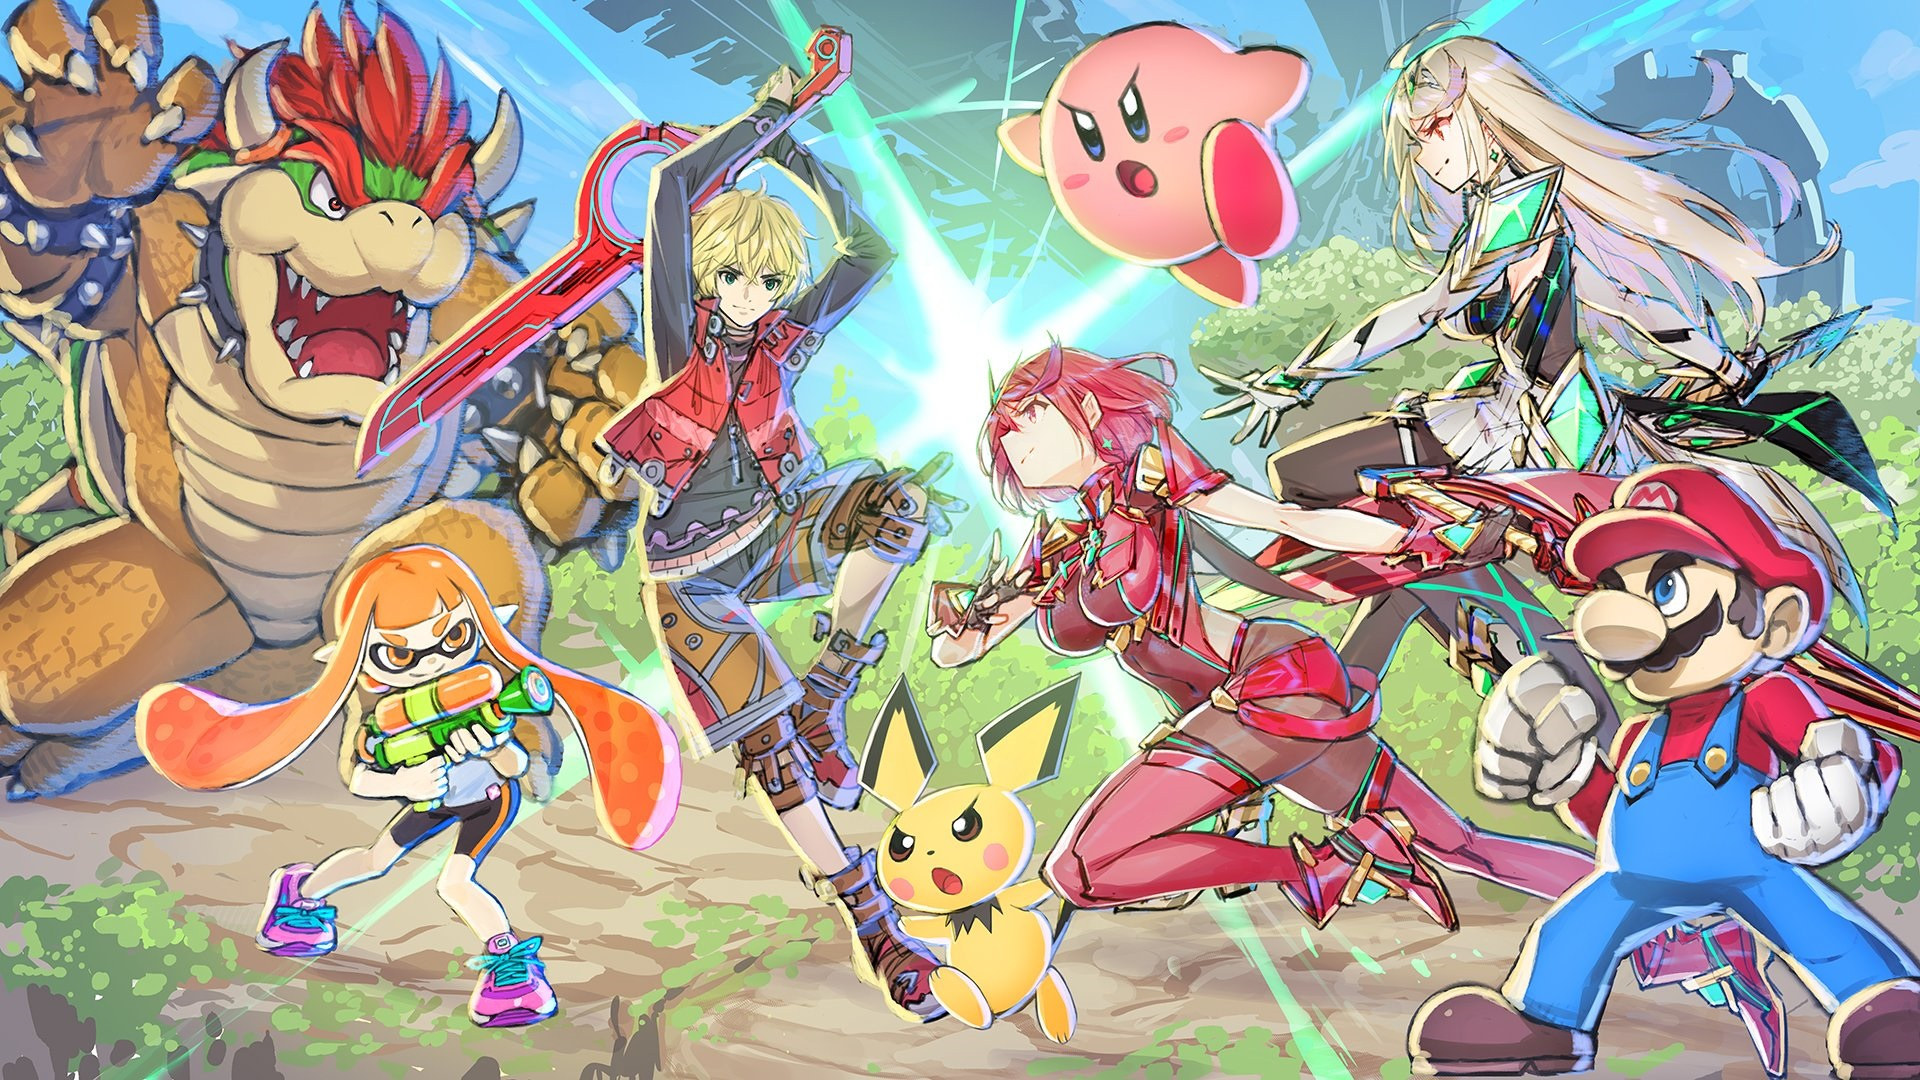 Here's art for the new Pyra and Mythra Smash Ultimate DLC from the Xenoblade 2 character designer screenshot